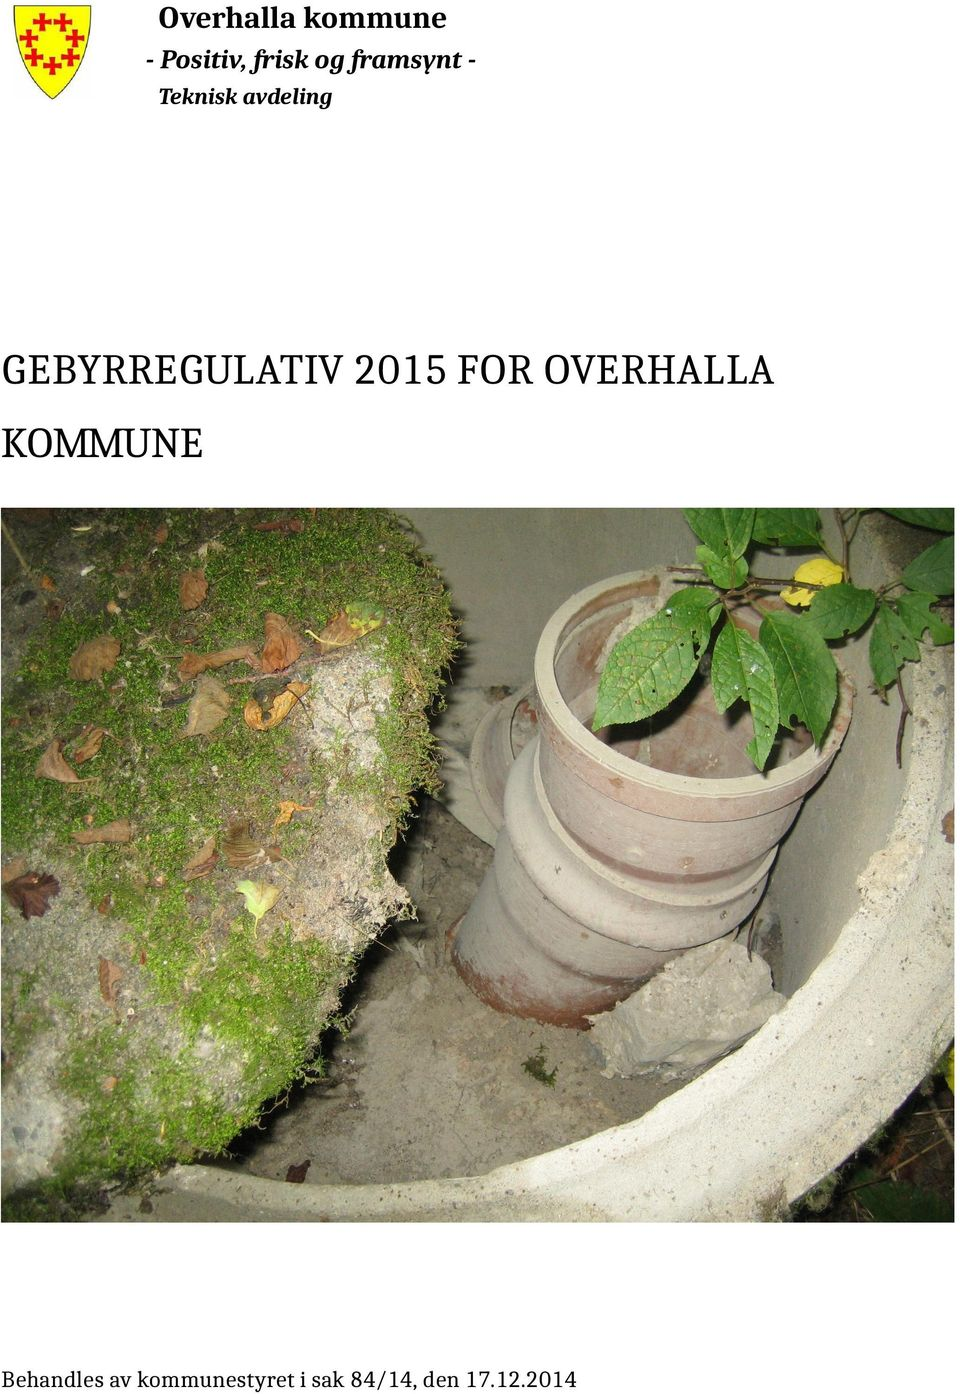 GEBYRREGULATIV 2015 FOR OVERHALLA